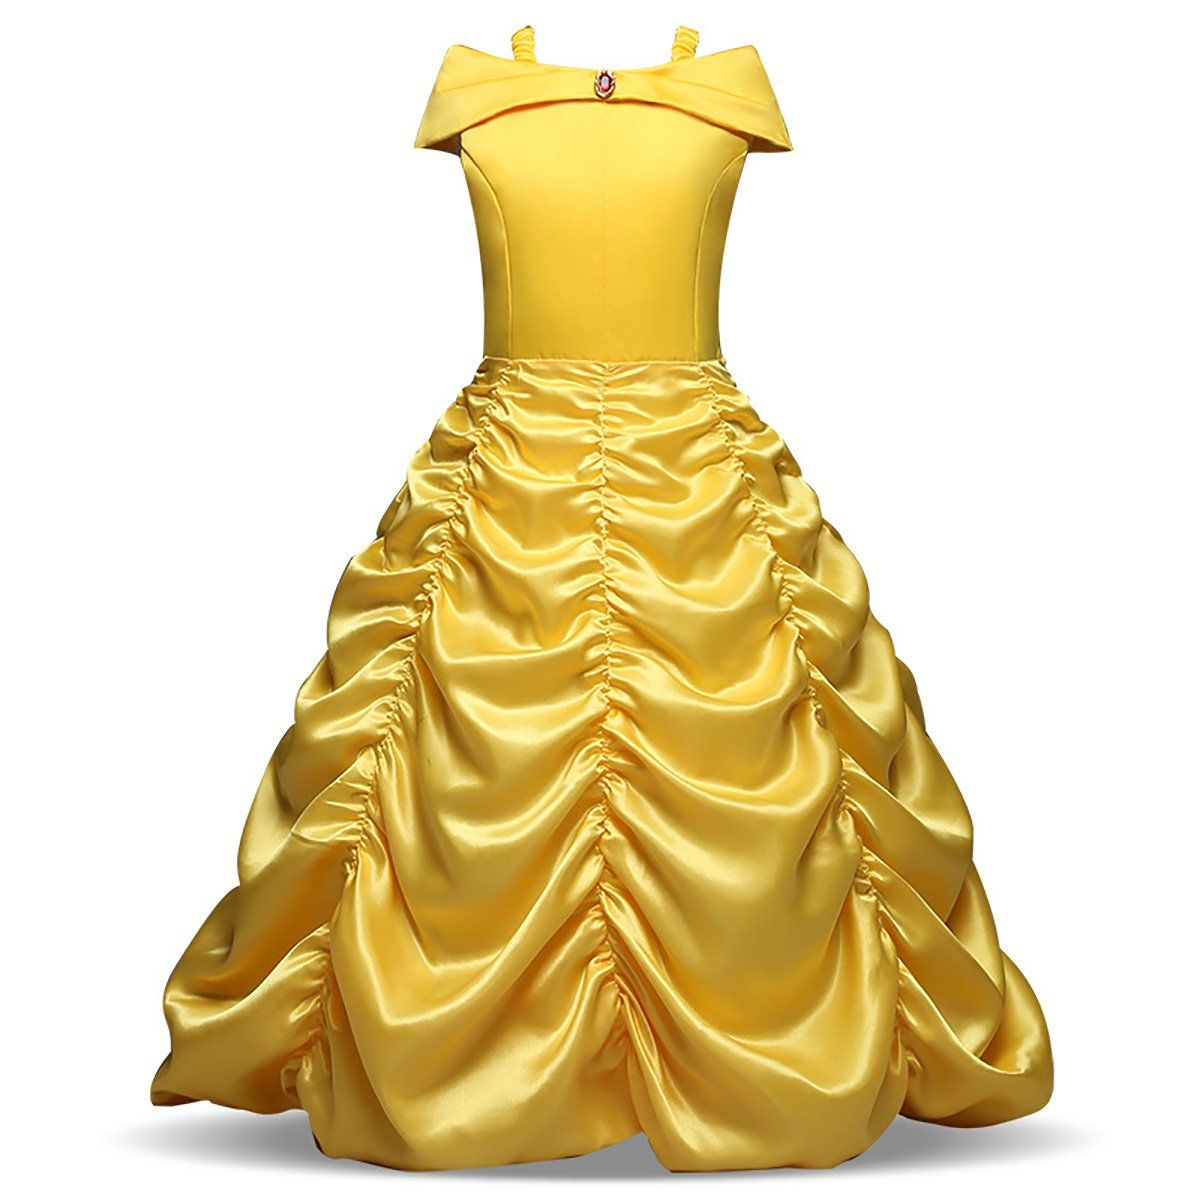 Princess Yellow Off Shoulder Layered Costume Dress For Little Girls With Accessories Walmart Com In 2021 Girls Fancy Dress Kids Party Dresses Belle Dress [ 1200 x 1200 Pixel ]